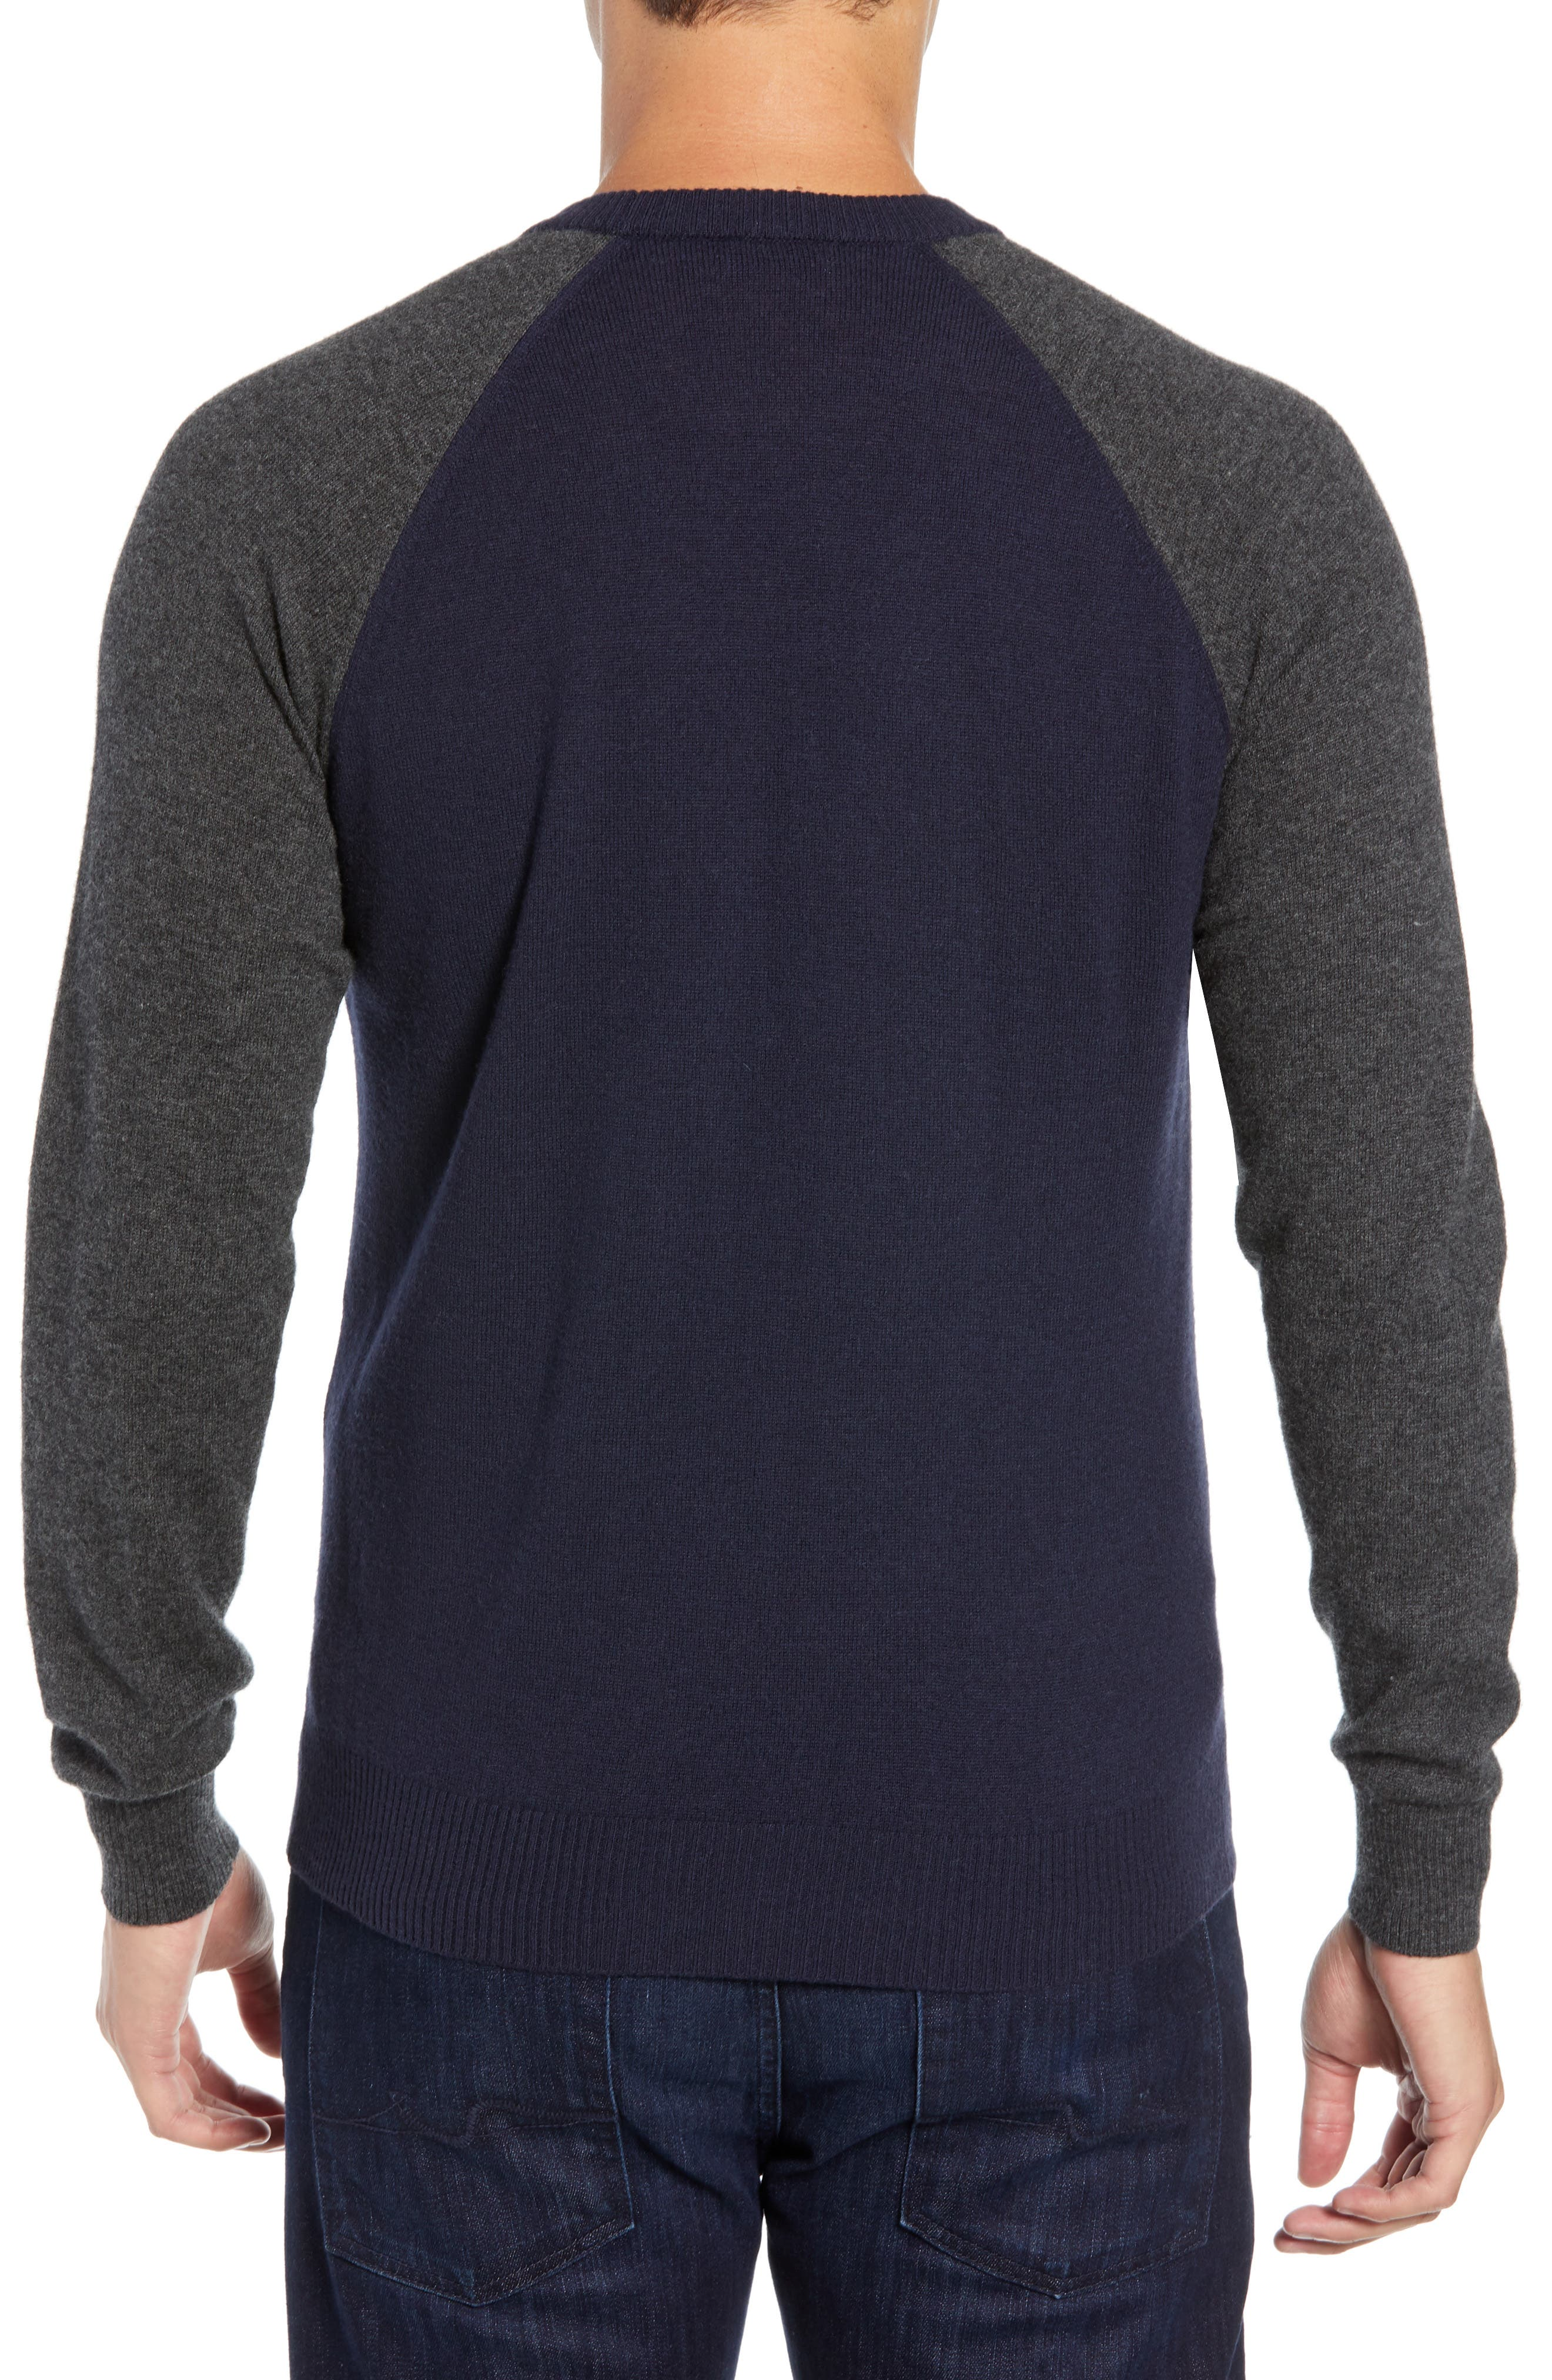 Active Crewneck Wool & Cashmere Sweater,                             Alternate thumbnail 2, color,                             NAVY